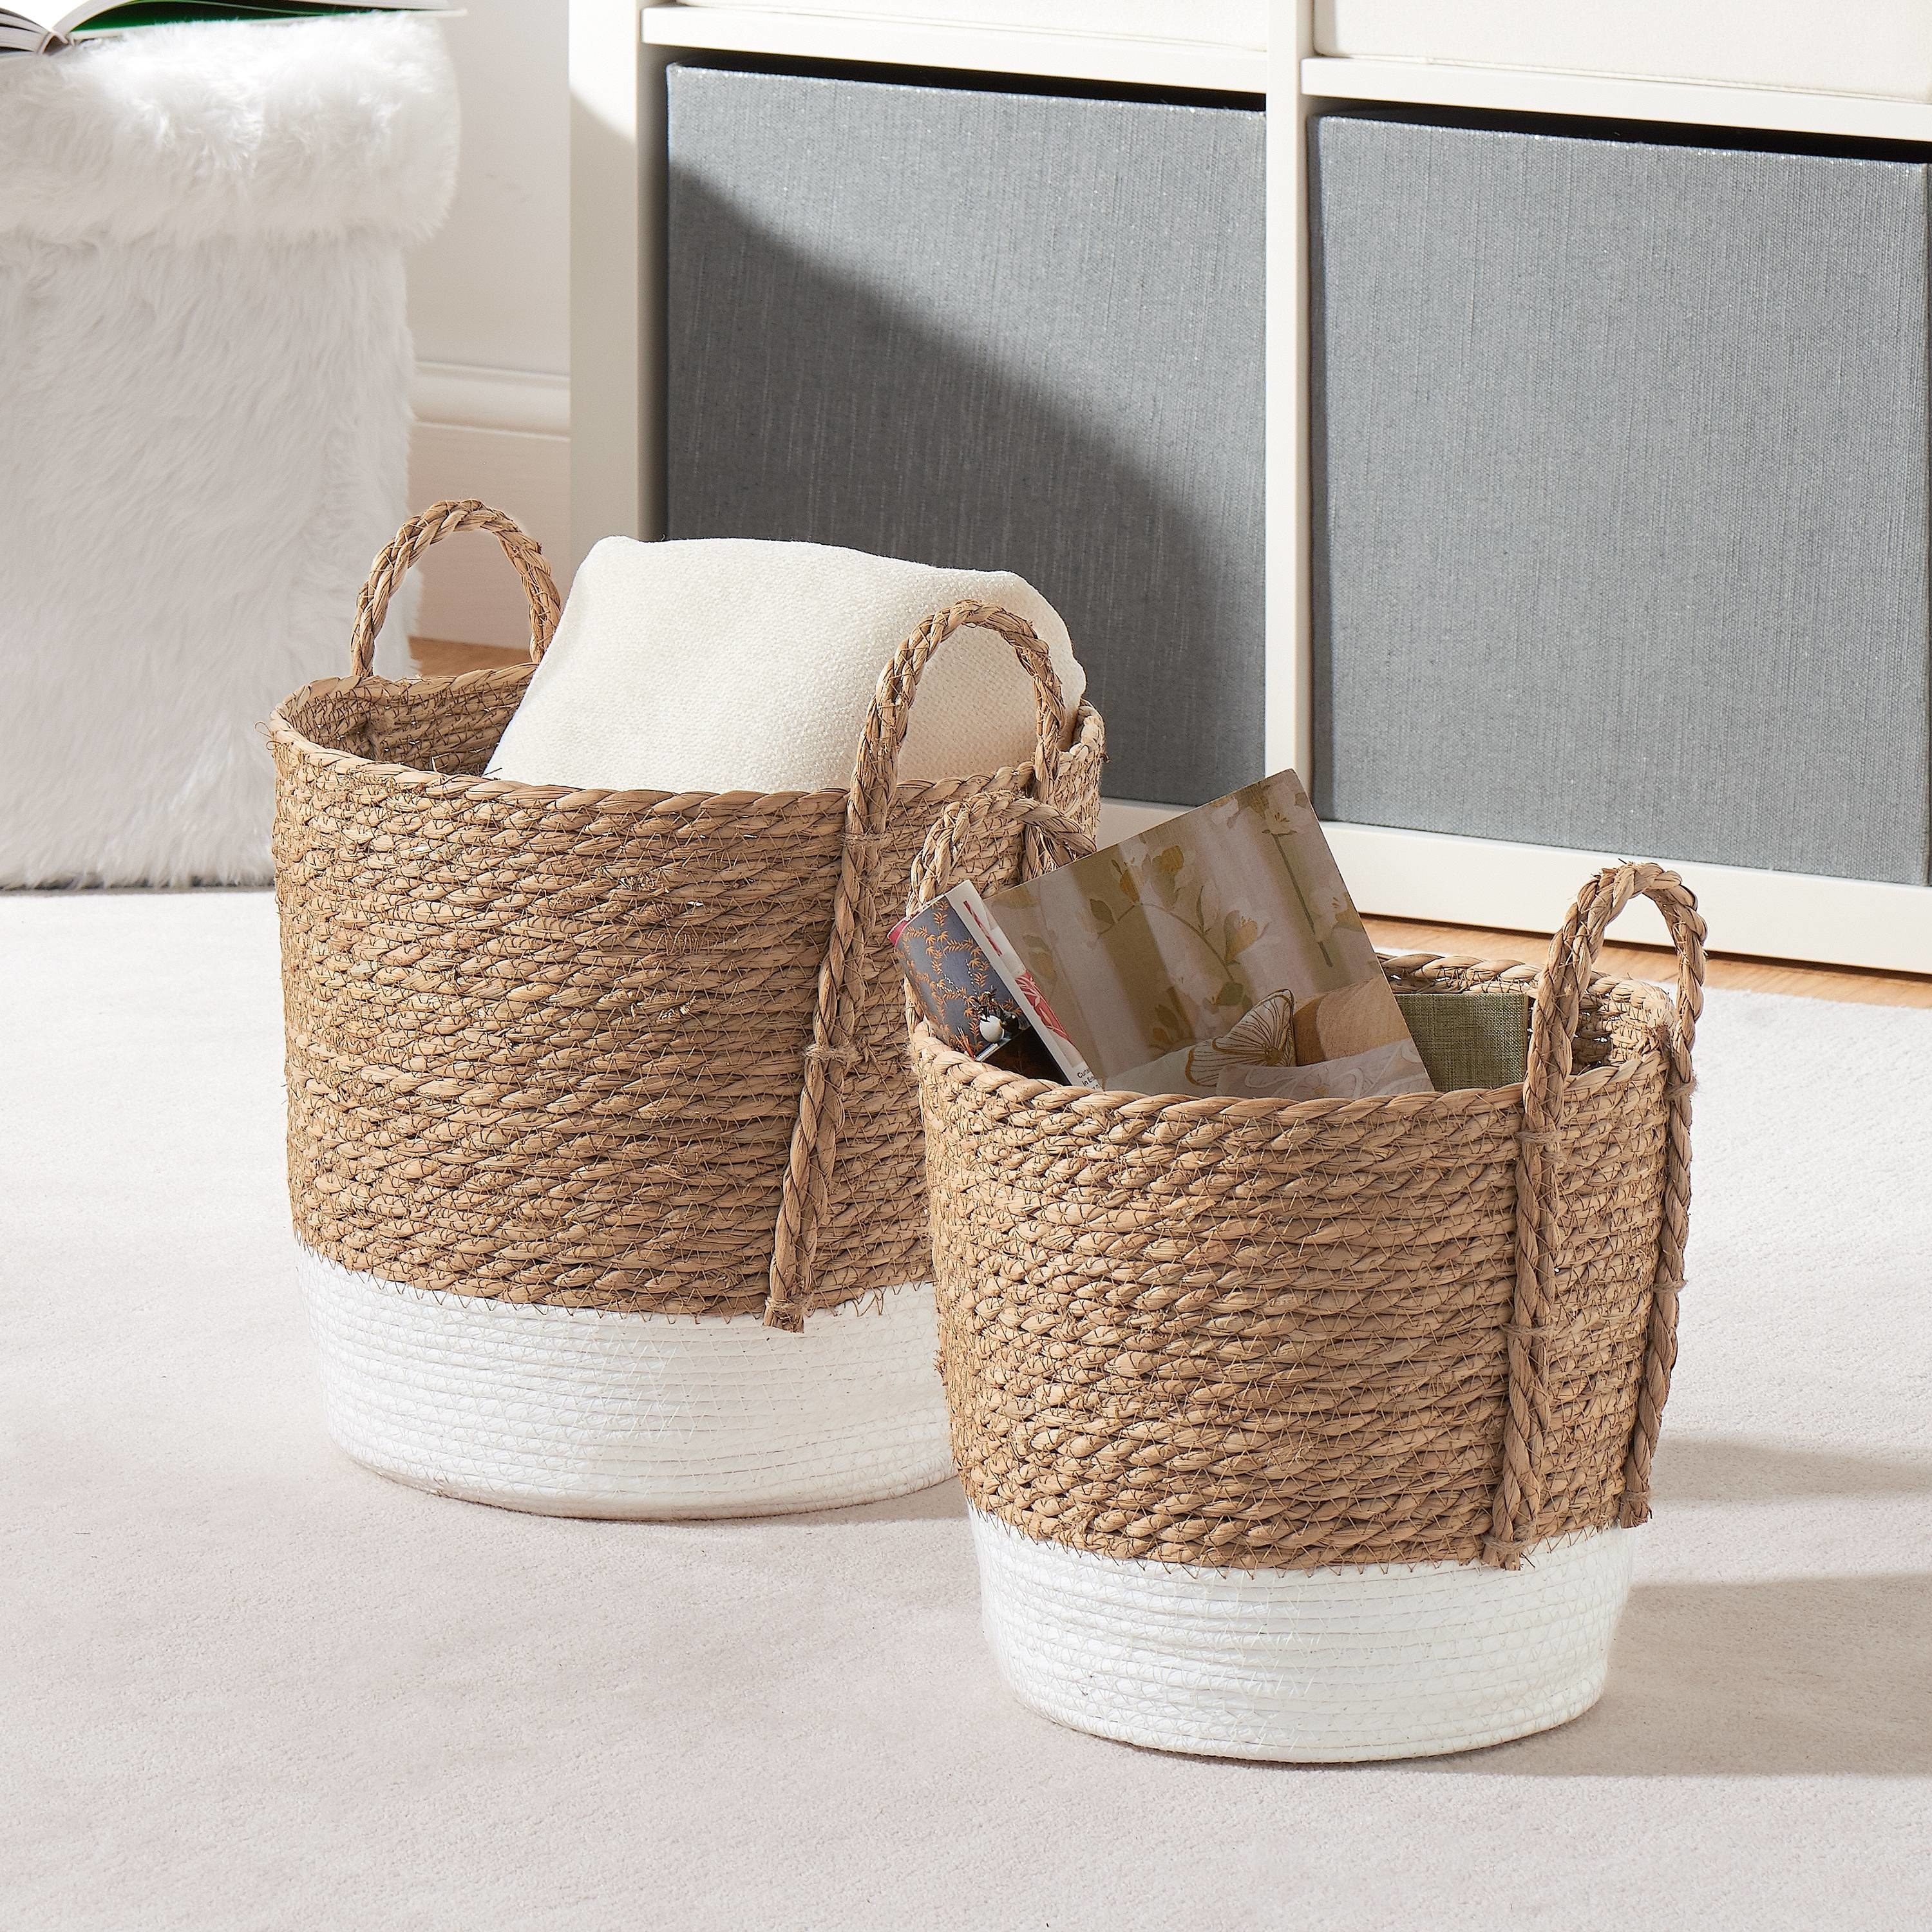 the baskets holding blankets and a magazine